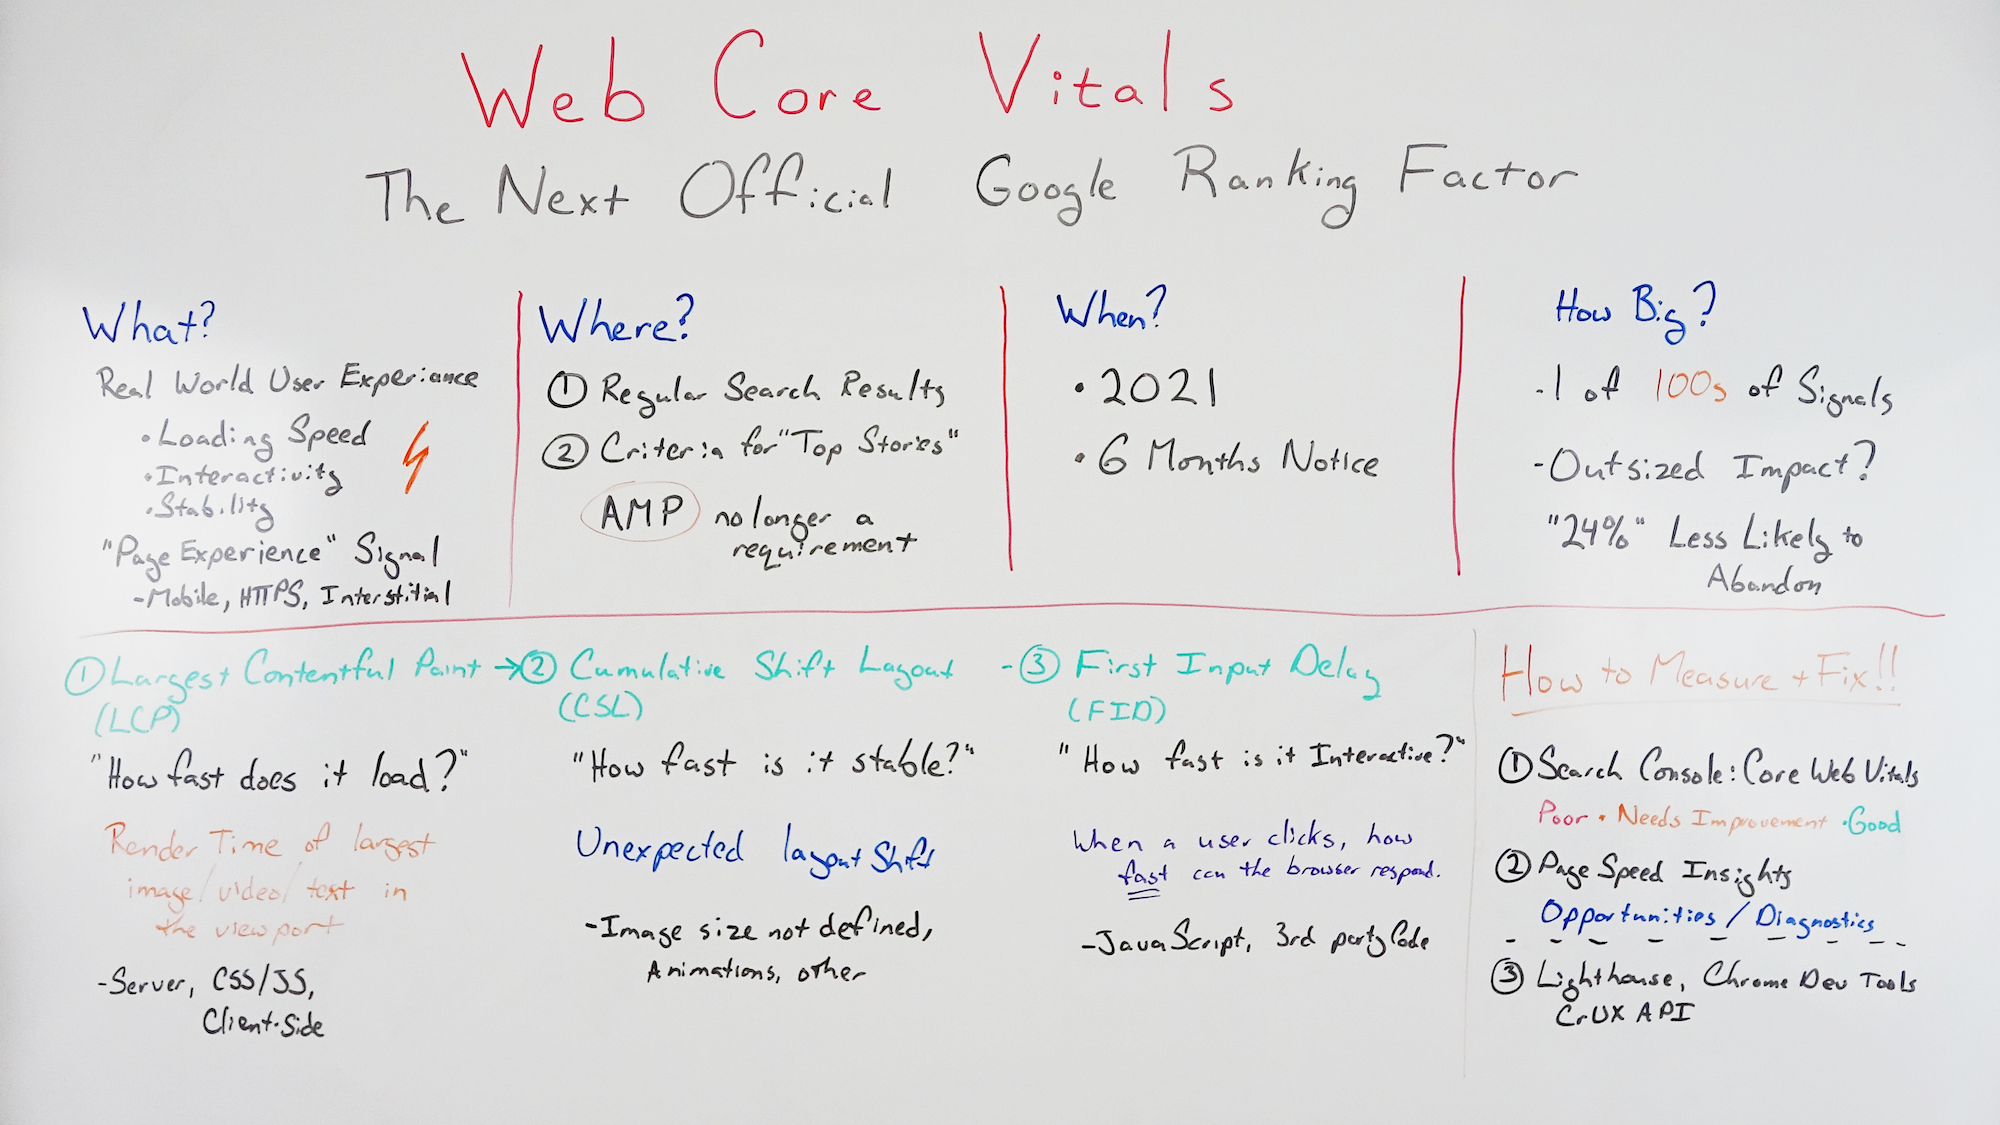 5f0f7436297796.10227578 - Core Web Vitals: The Next Official Google Ranking Factor - Whiteboard Friday